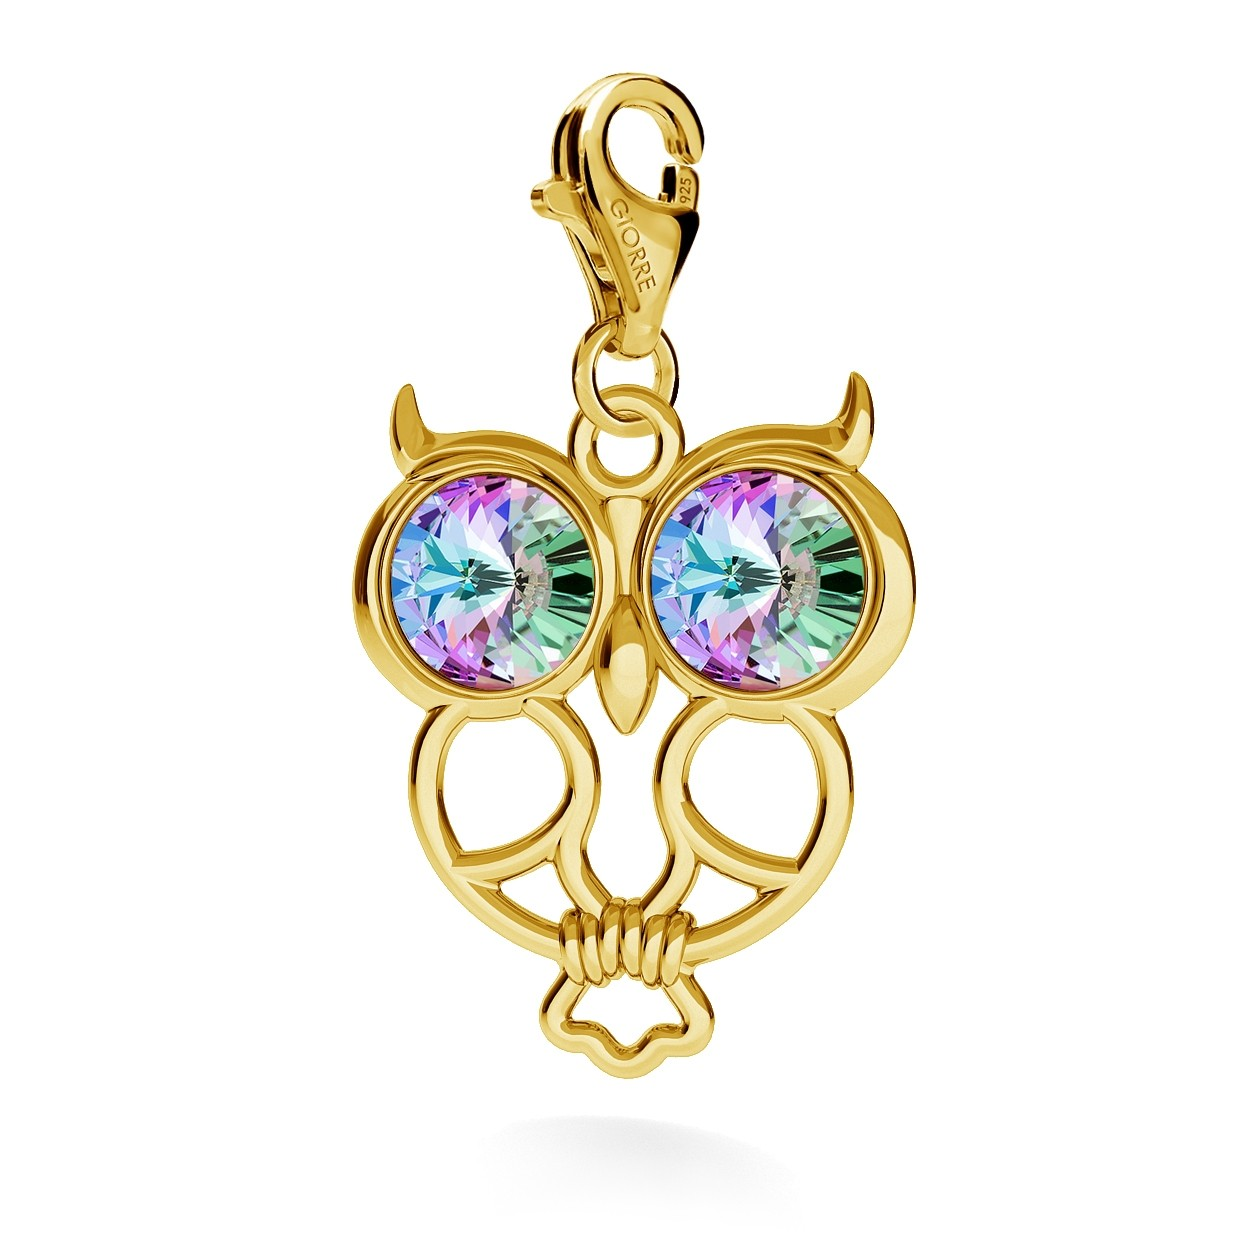 MONUMENT PENDANT WITH SWAROVSKI RIVOLI, CHARMS 273